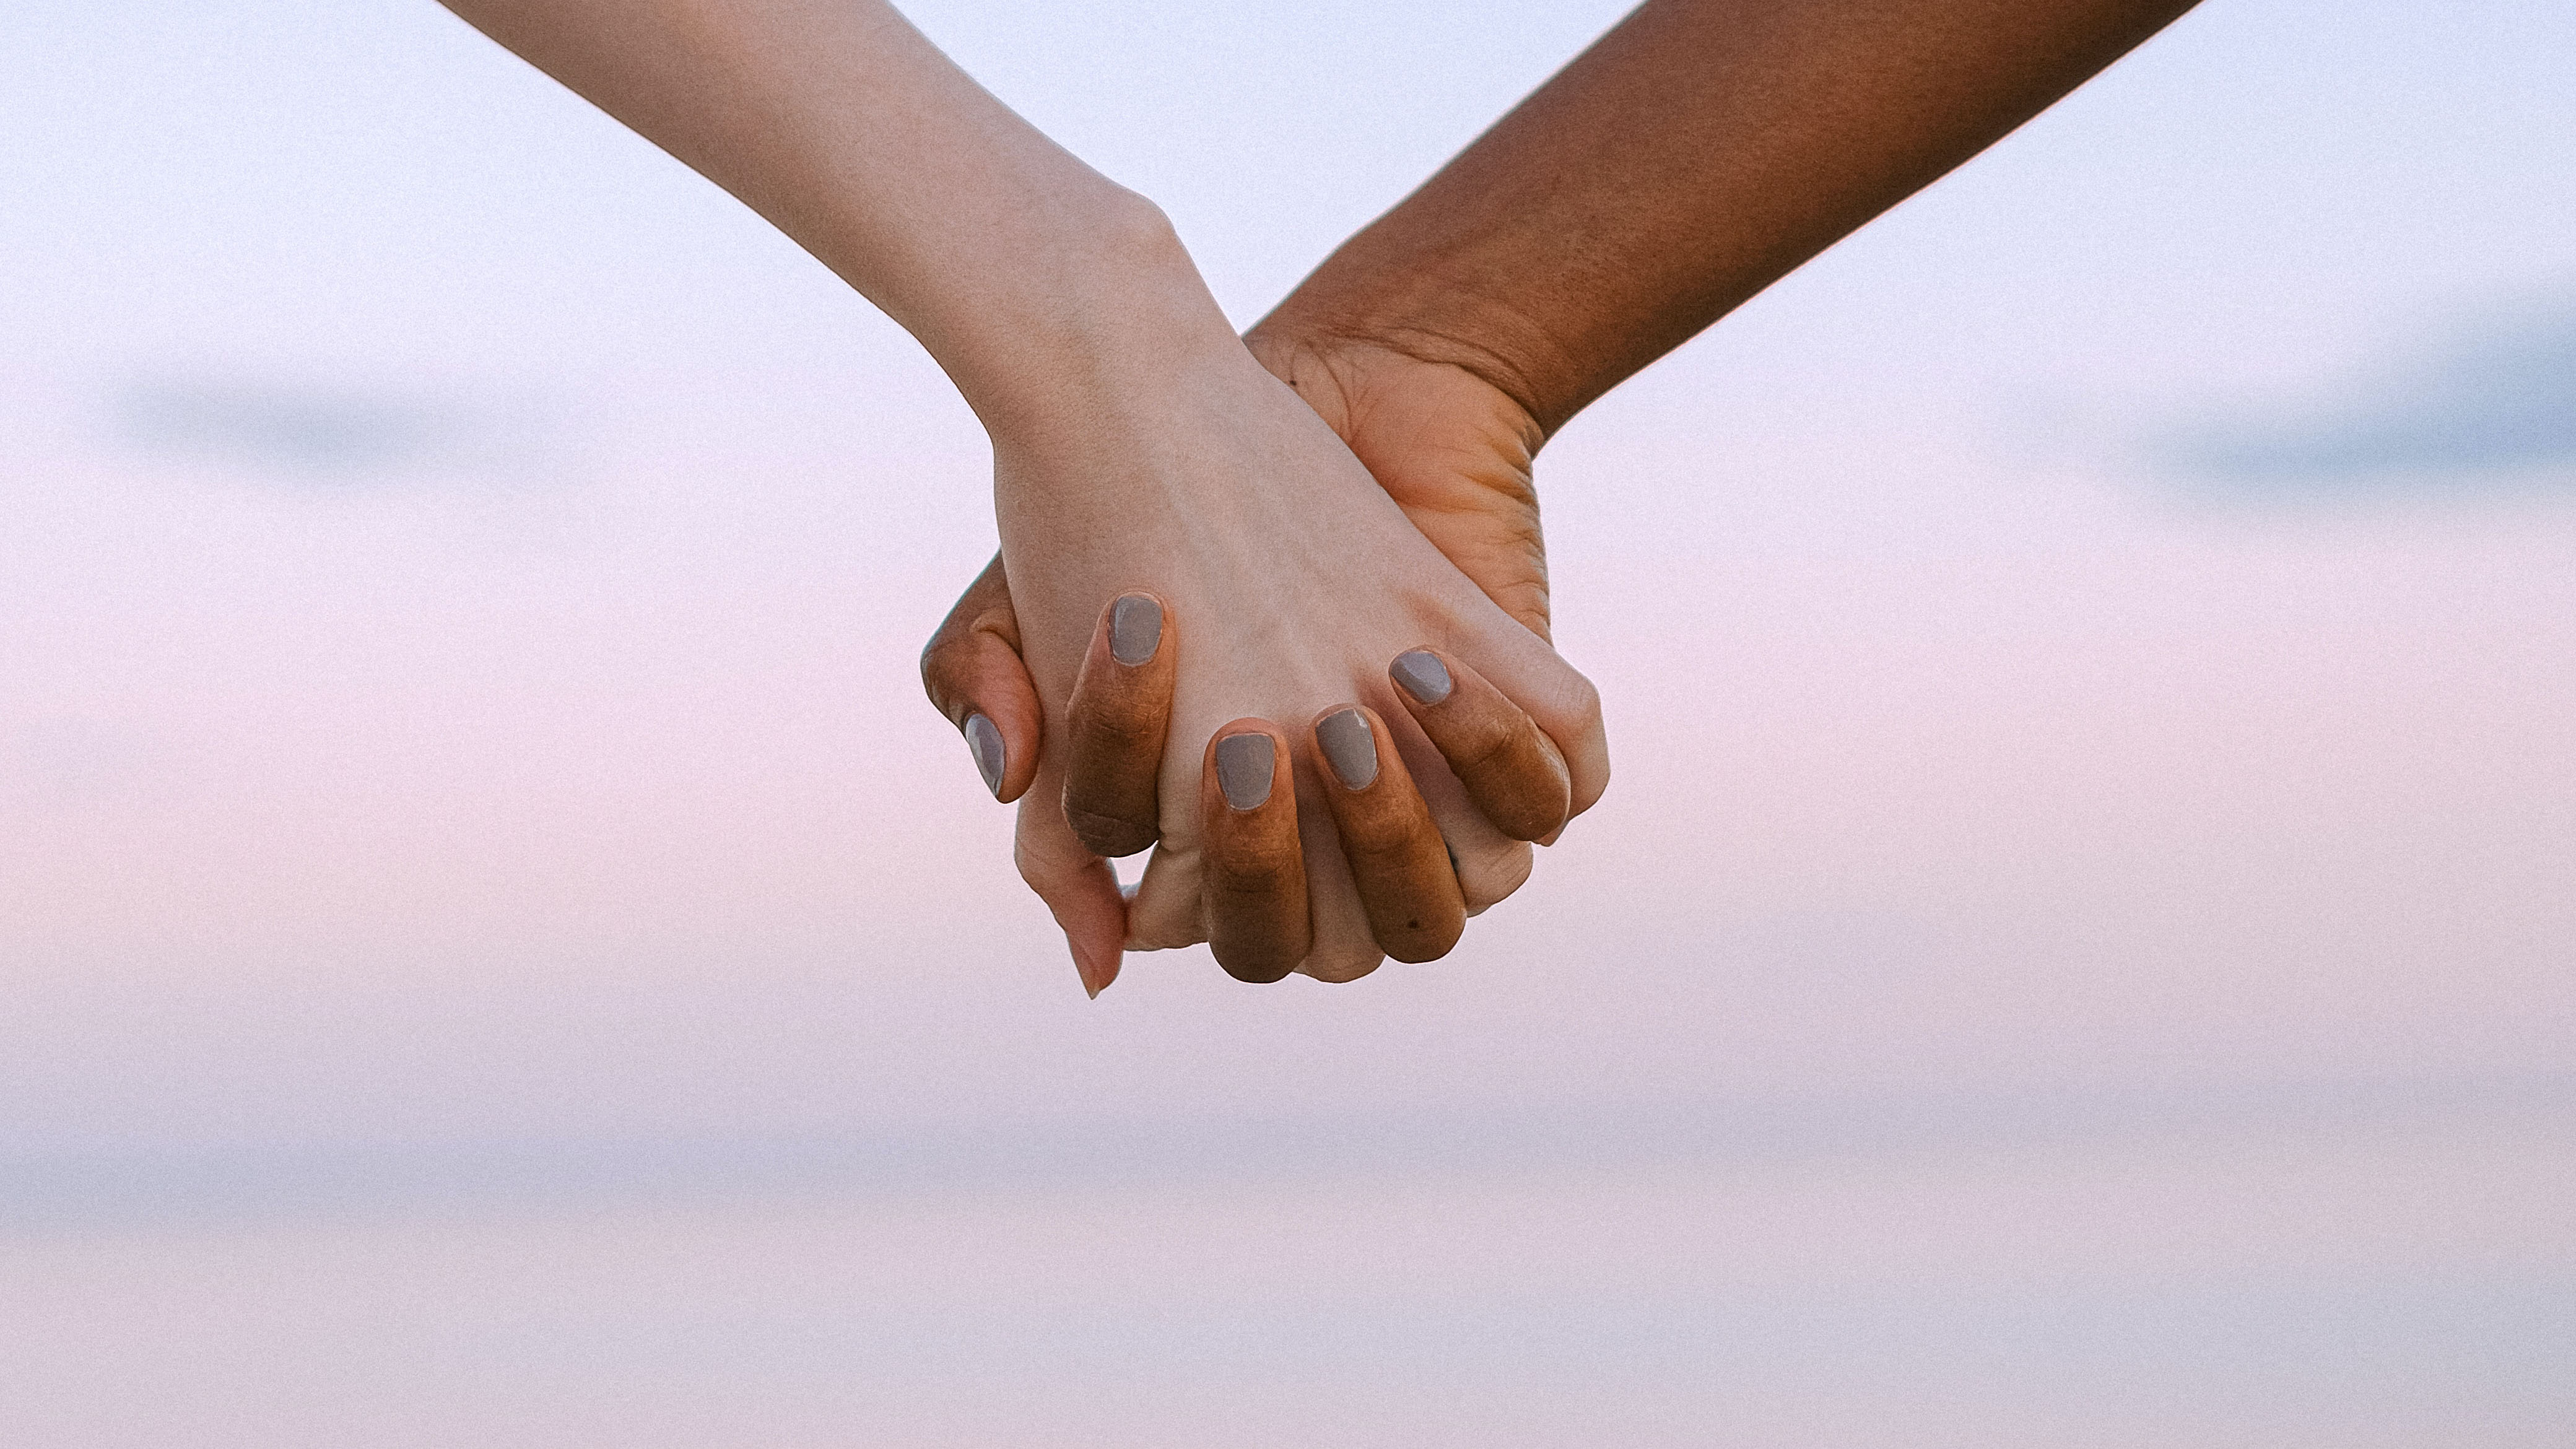 Two people holding hands, only hands in view.